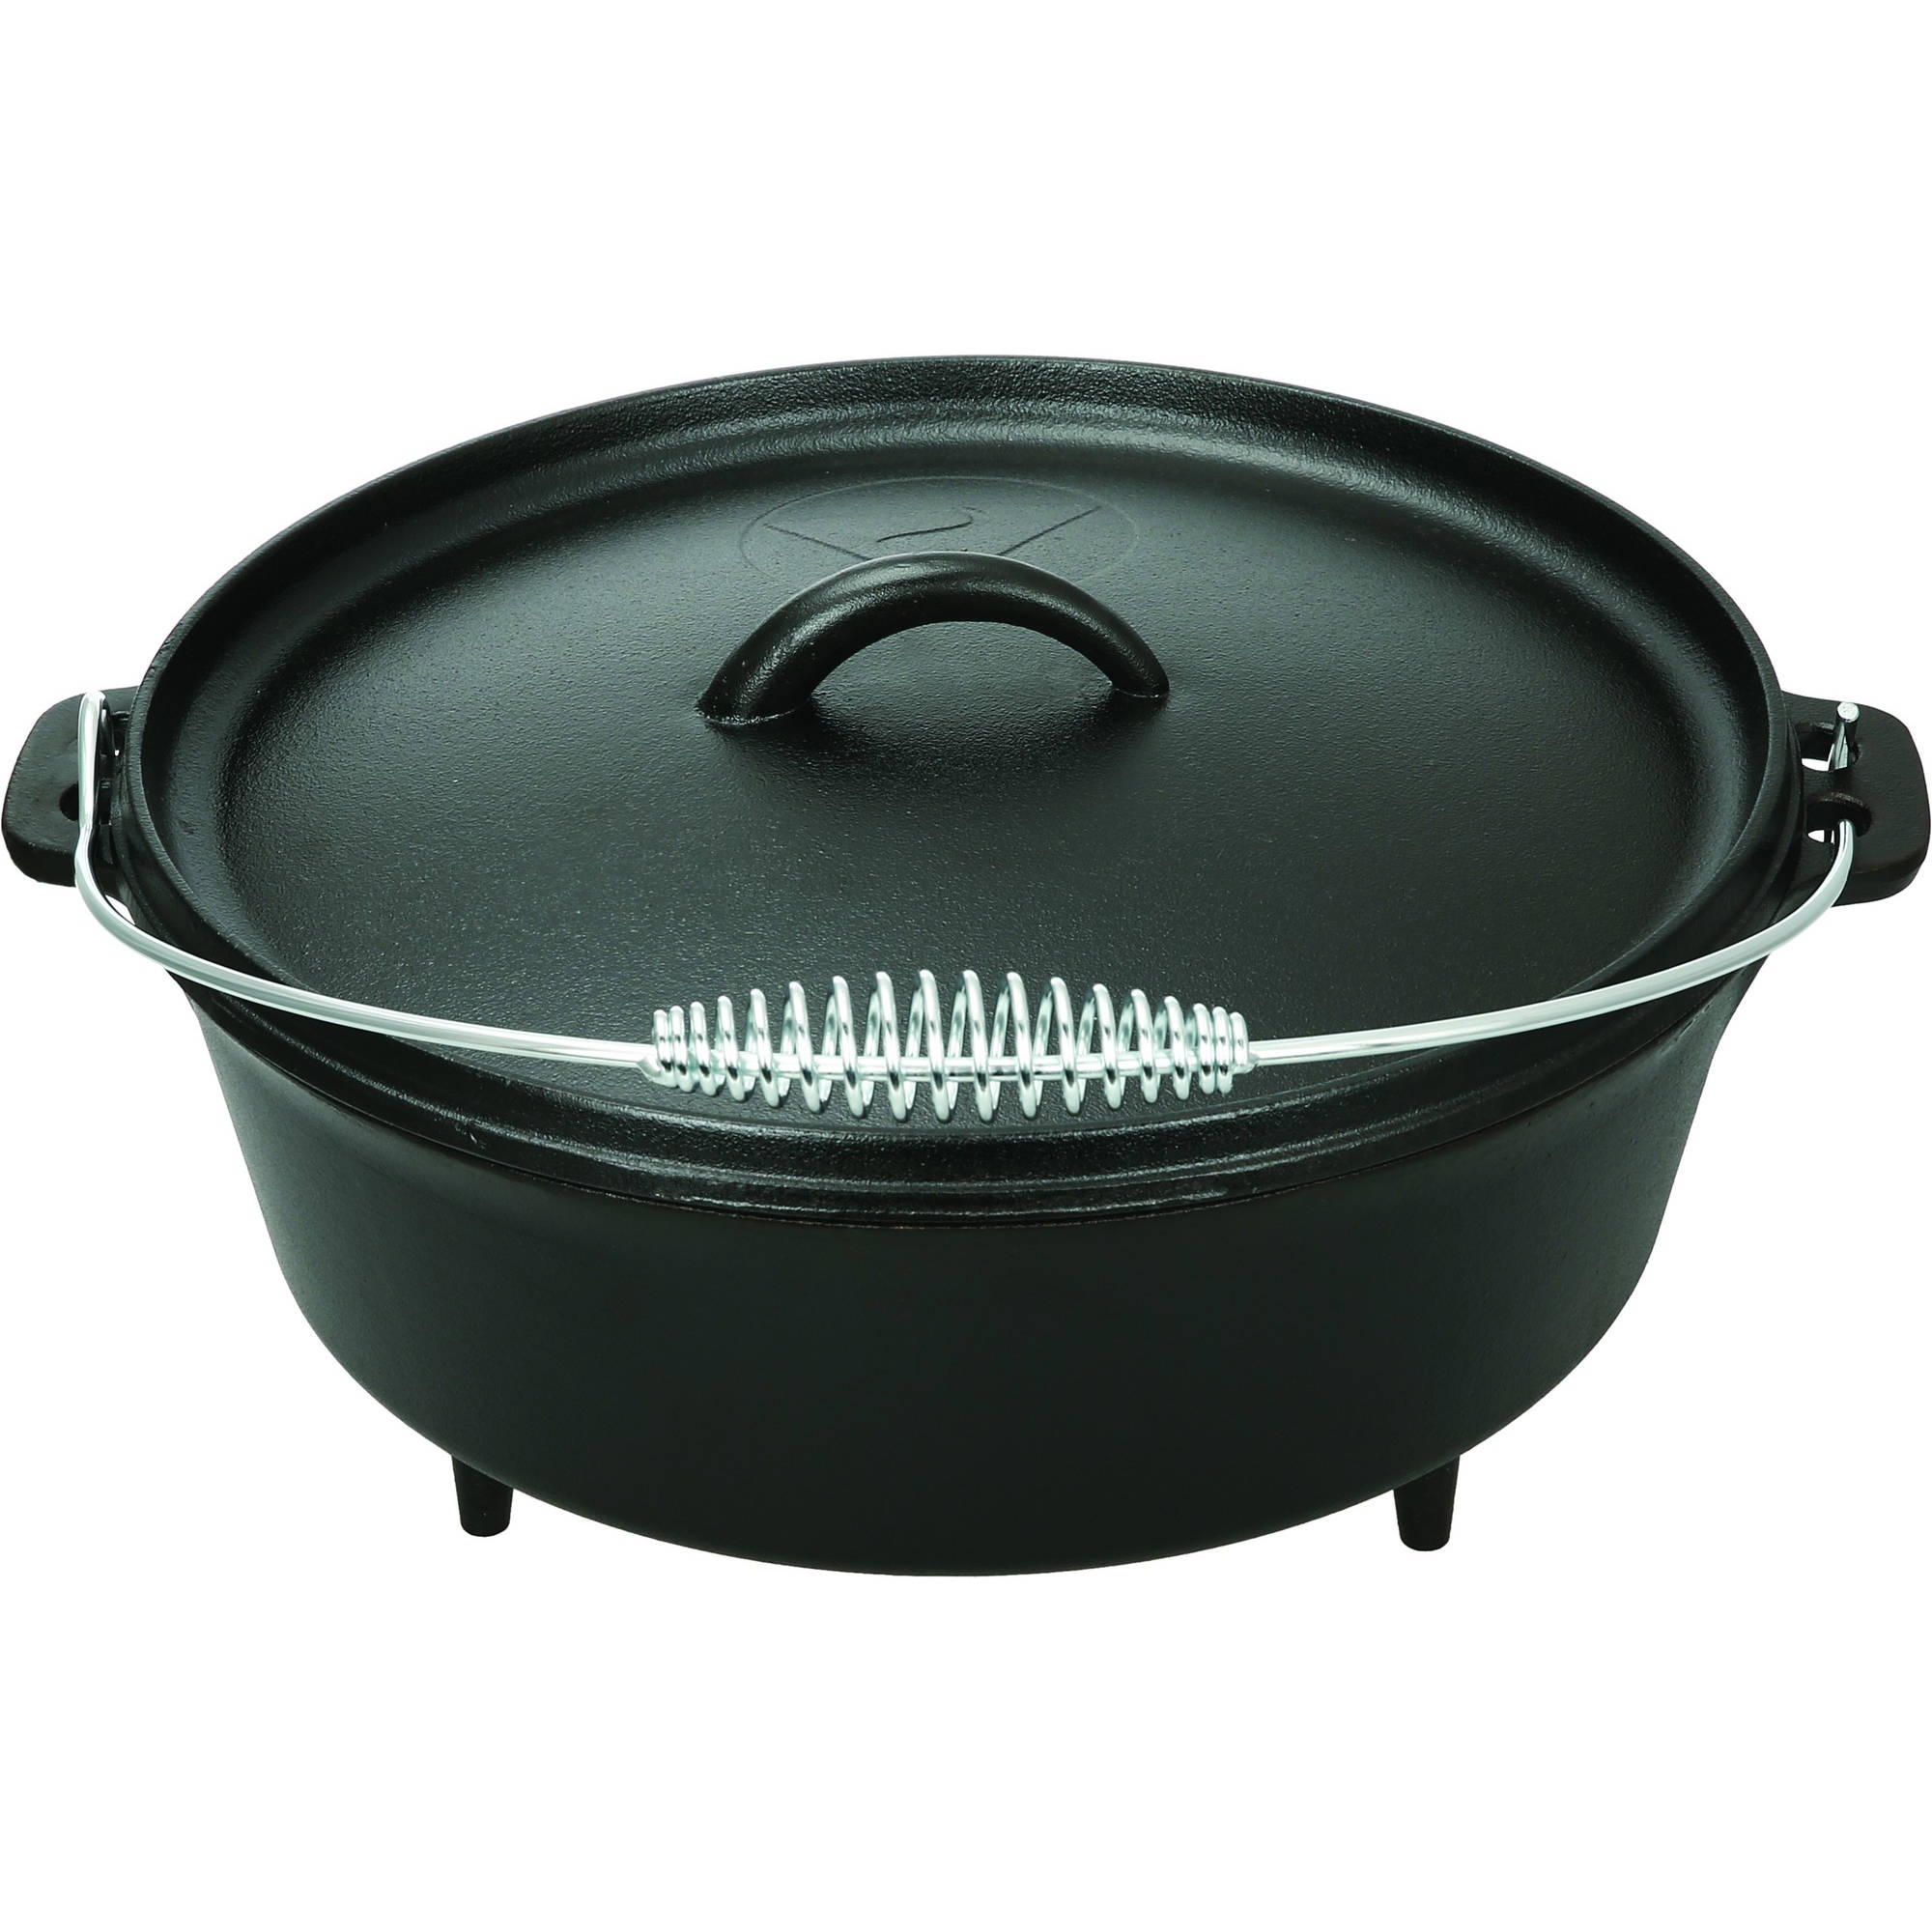 Ozark Trail 5QT Dutch Oven